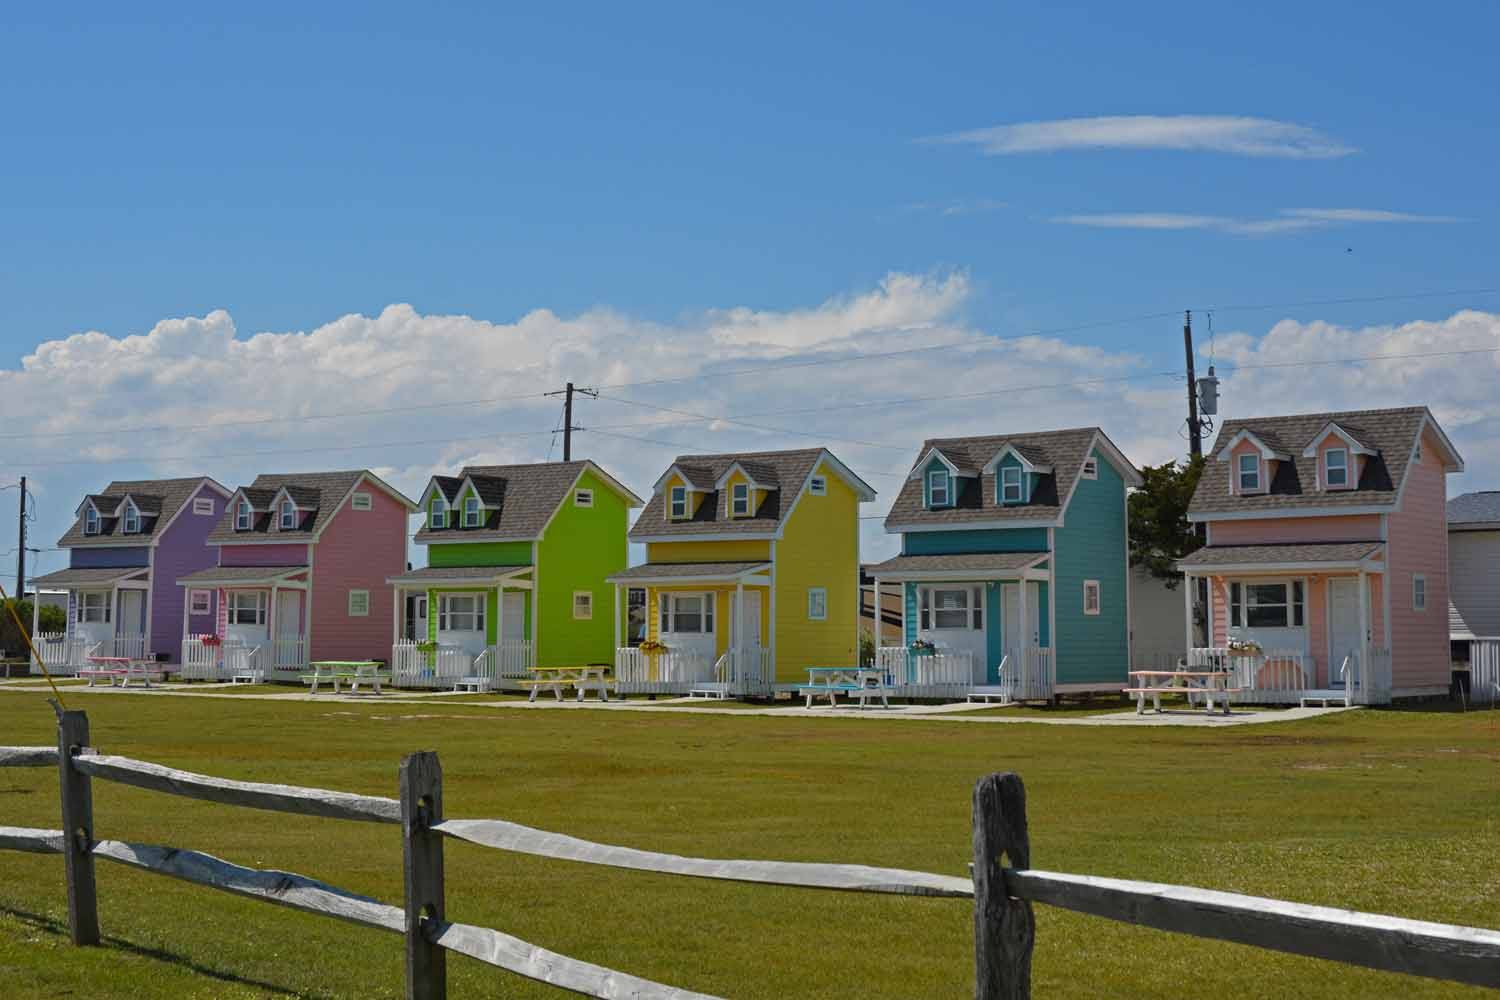 Colorful tourist hangout long the Cape Hatteras Seashores